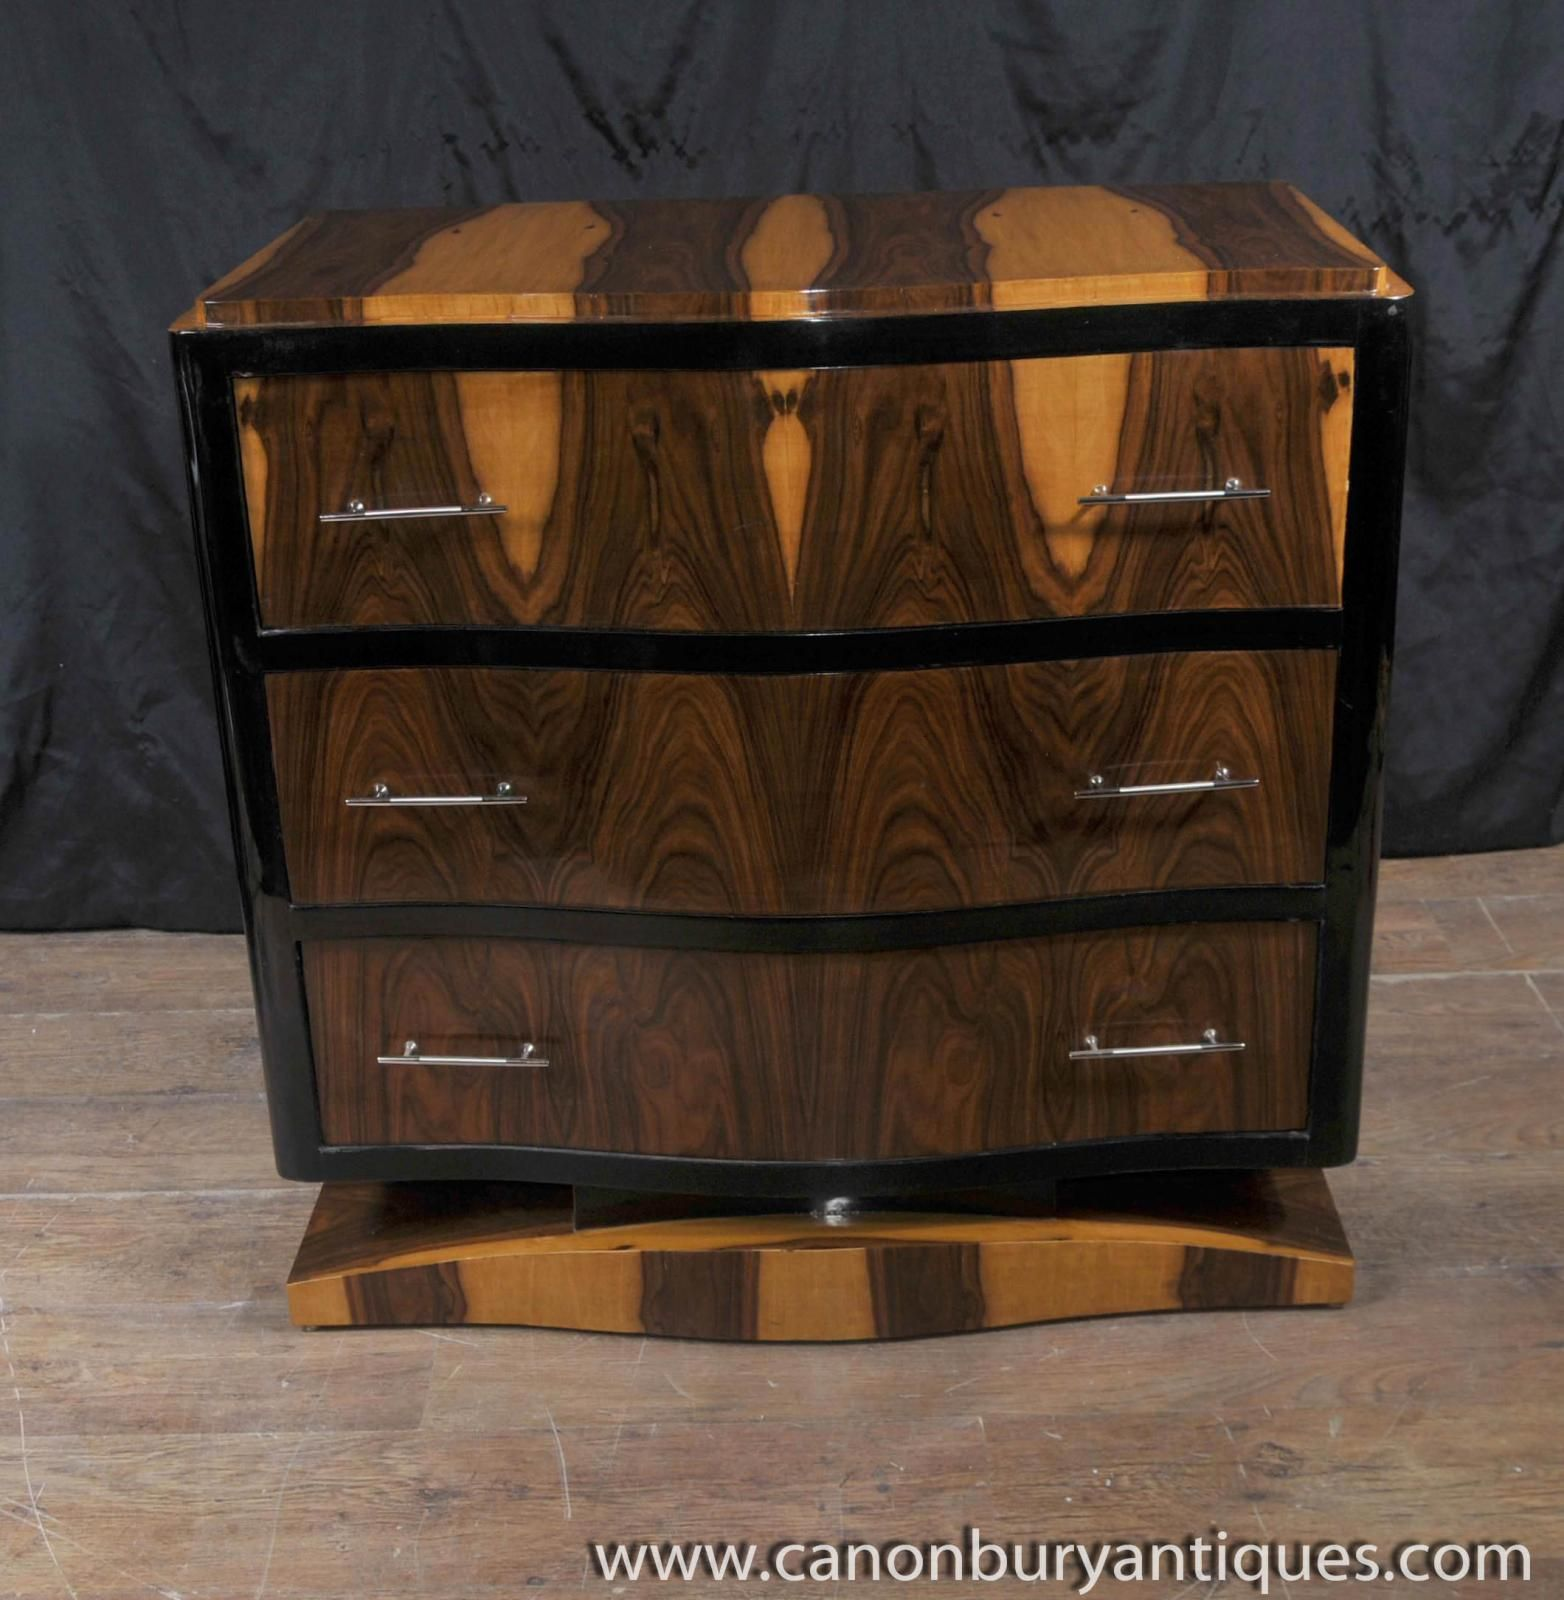 Photo of Art Deco Chest Drawers 1920s Bedroom Furniture